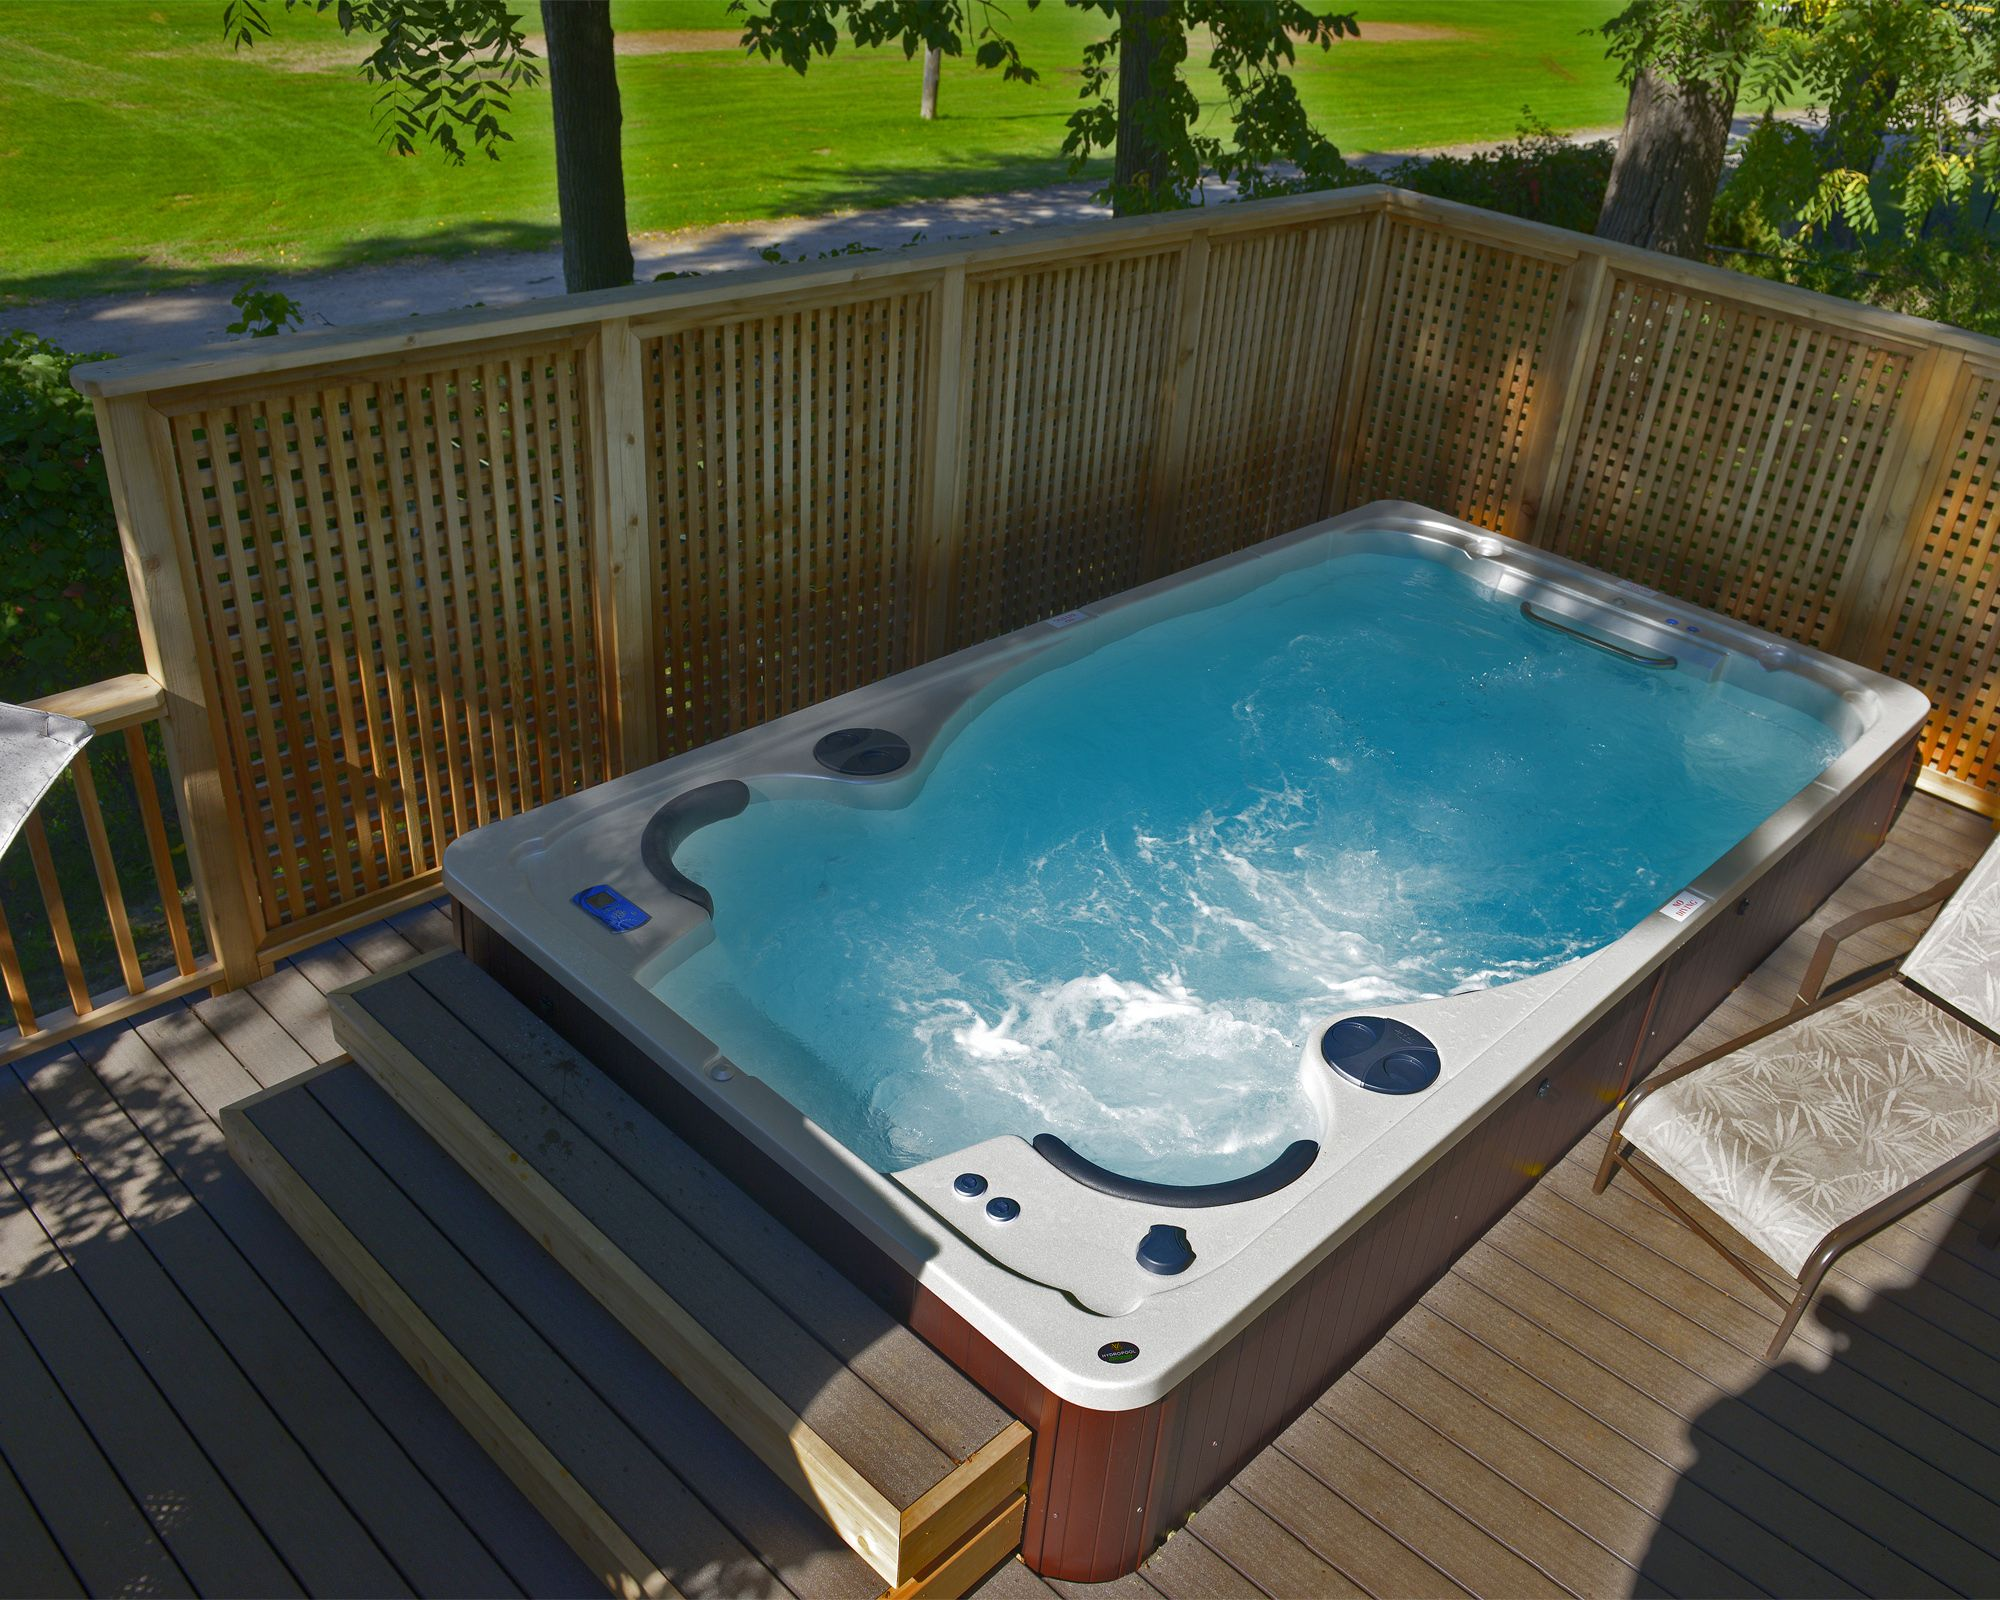 Hydropool Self Cleaning Swim Spa Installed In A Deck Swim Spa